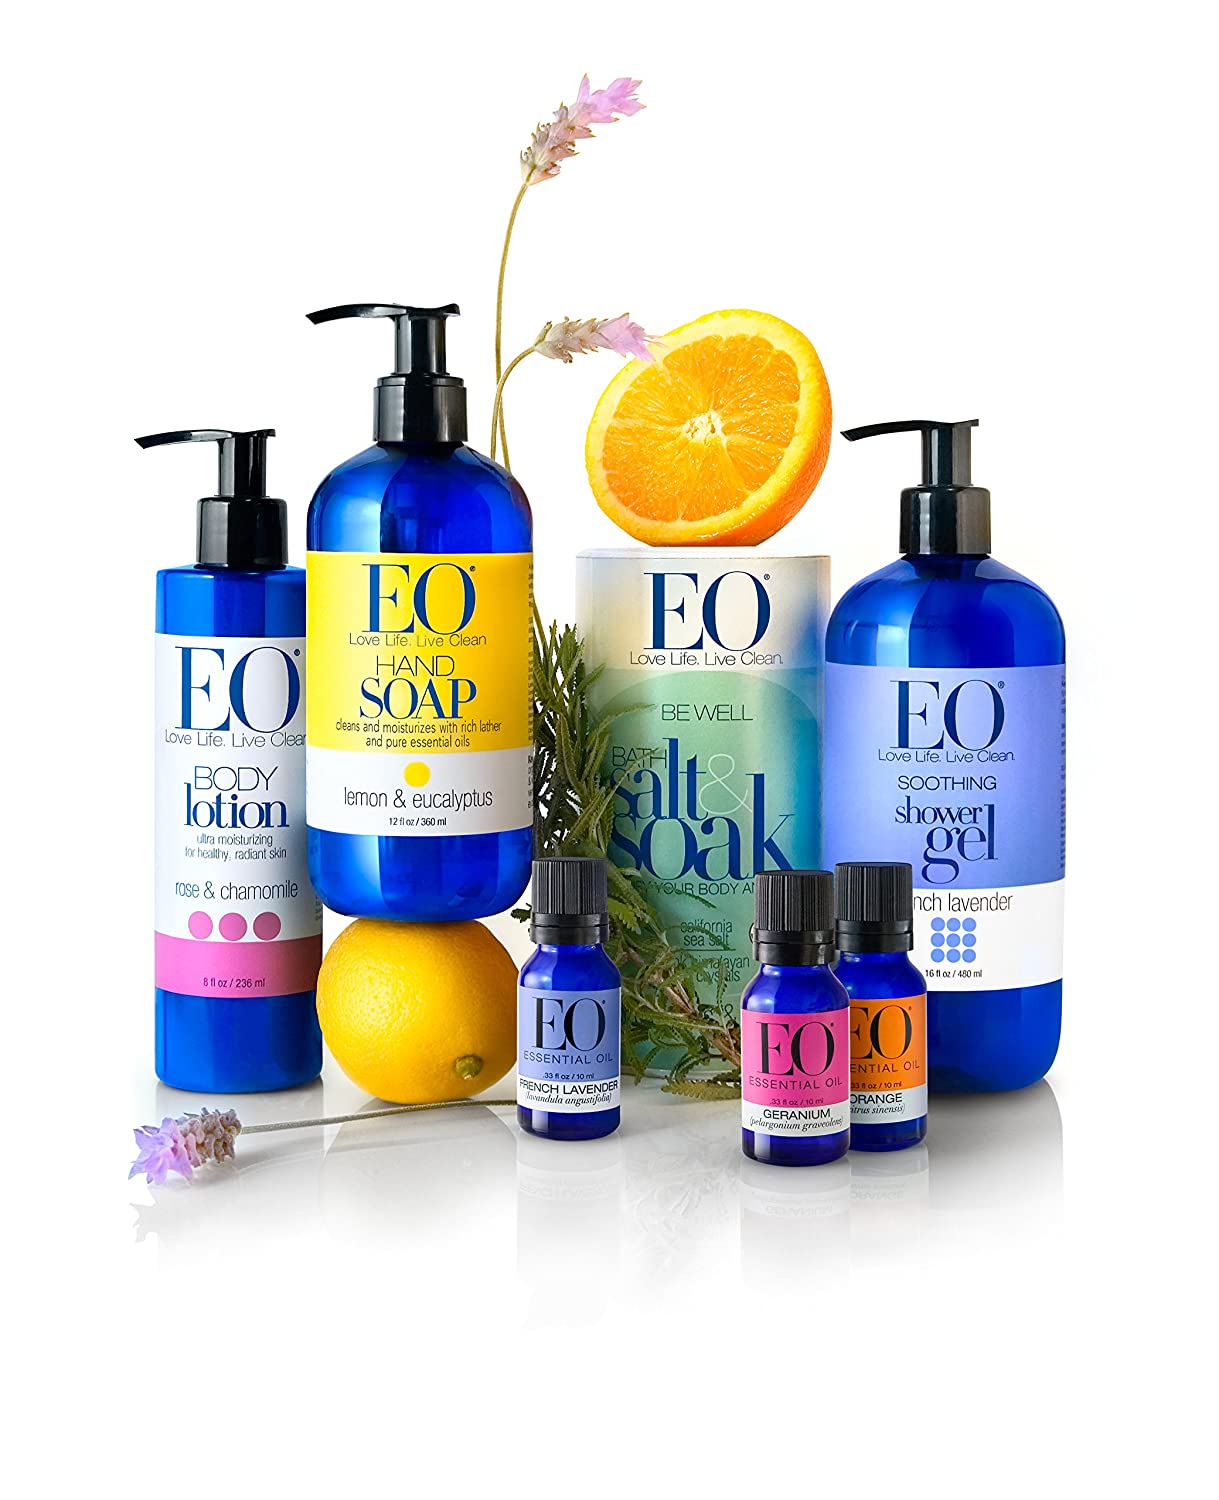 EO Shower Gel, Grapefruit and Mint, 16 Ounce Bottles Pack of 2